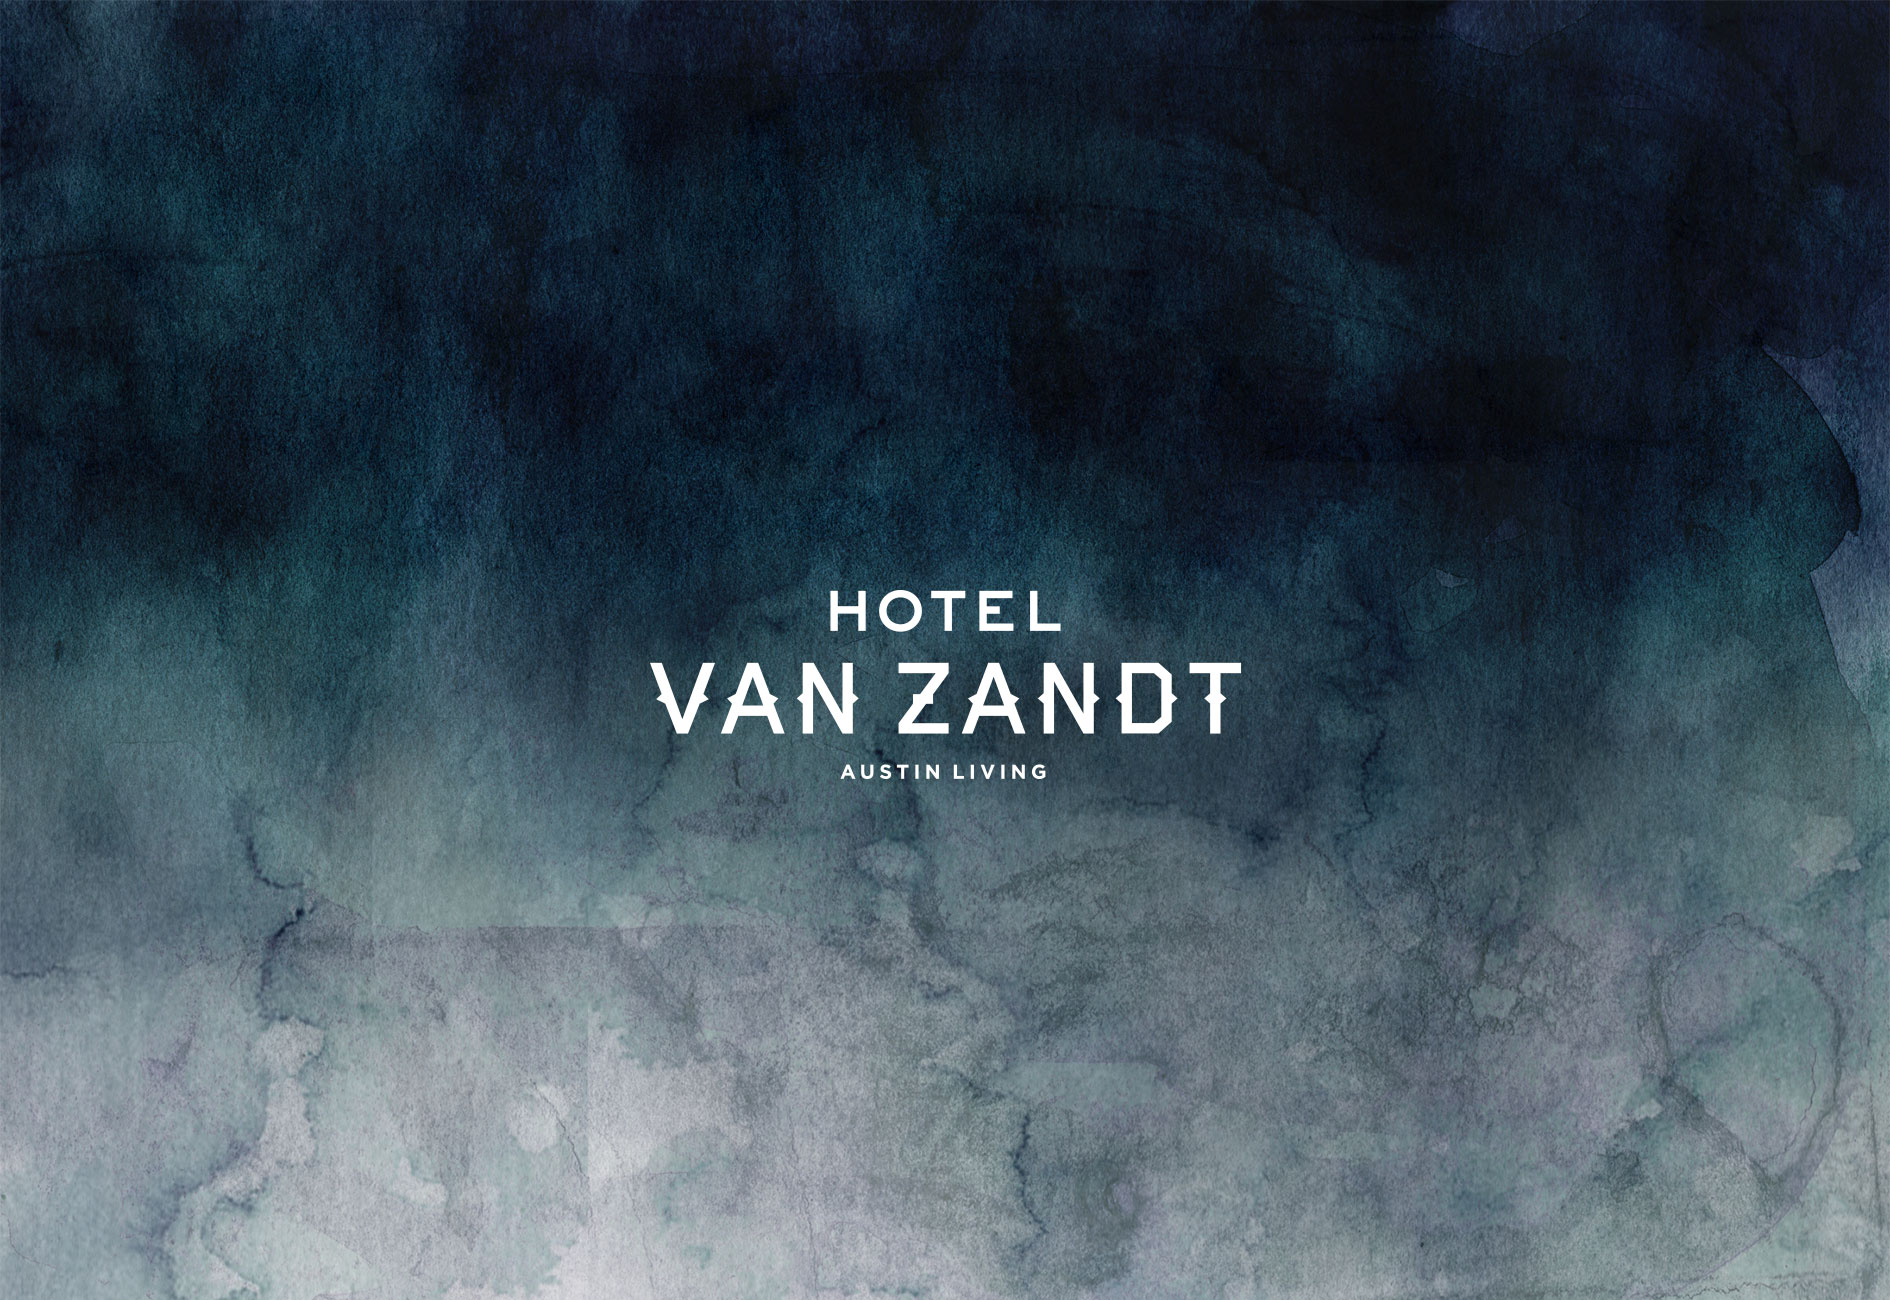 HOTEL VAN ZANDT BRANDING by Mark Zeff Design